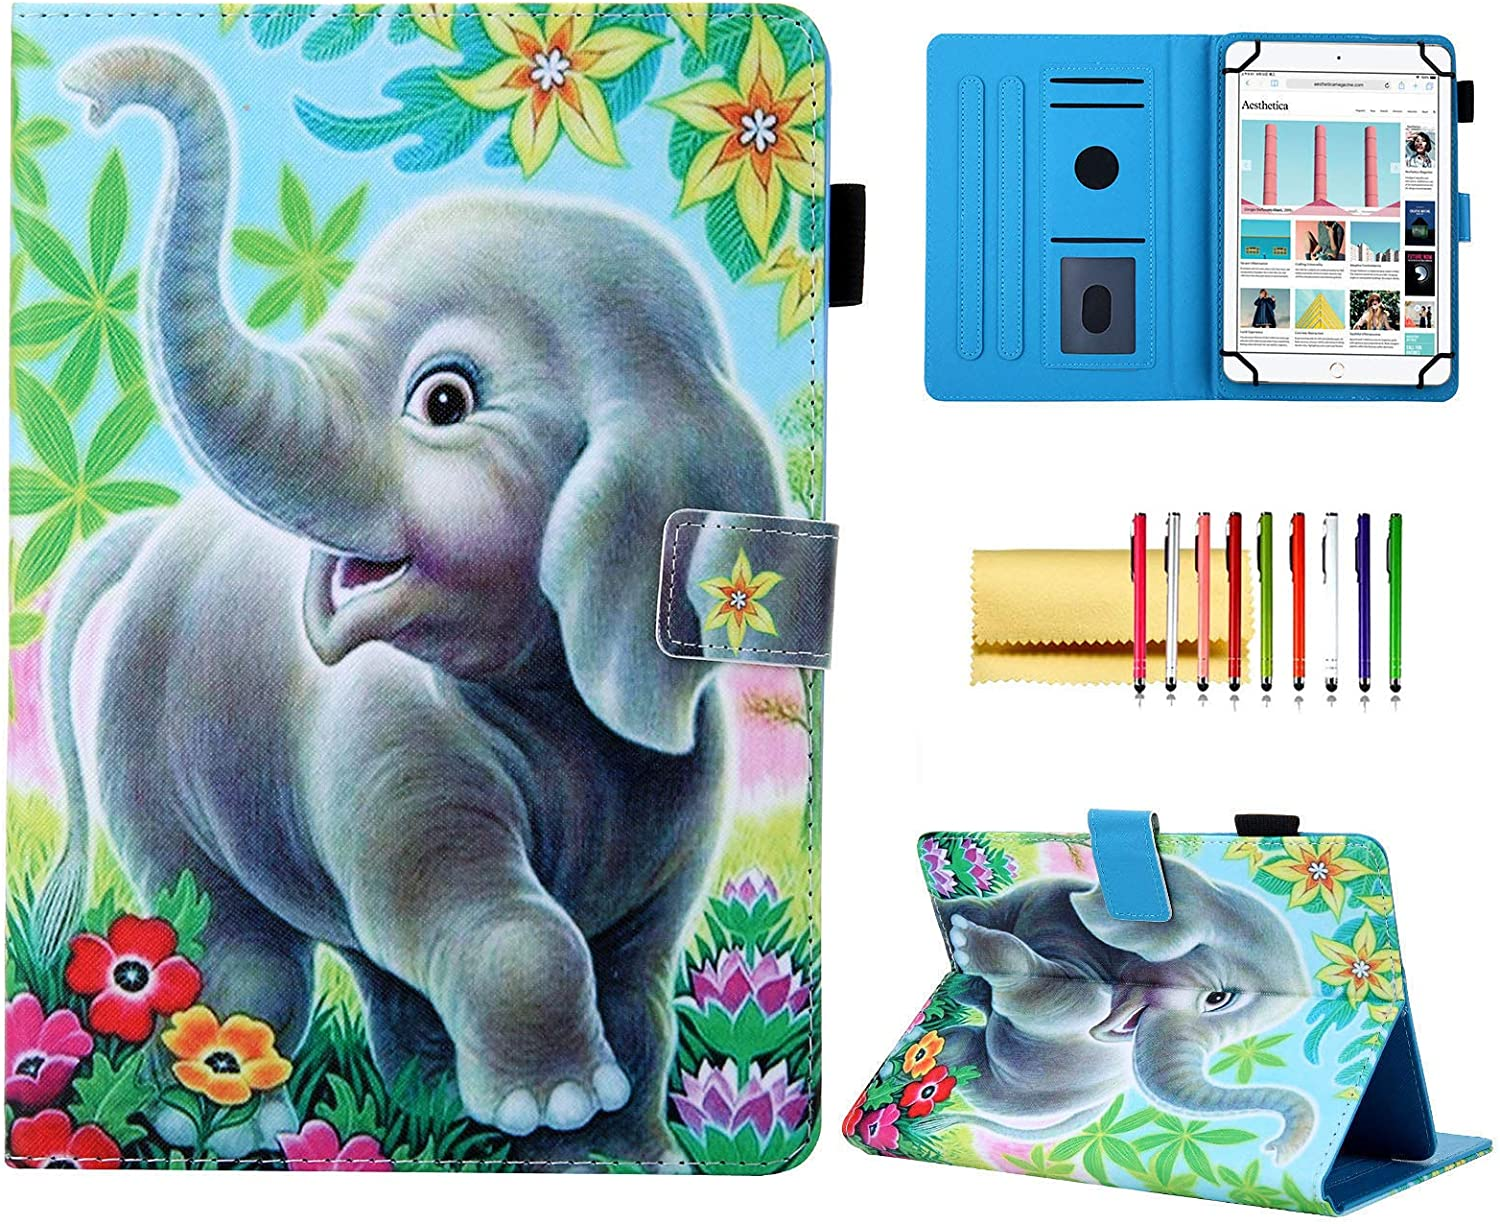 10 inch Tablet Universal Case, Techcircle Cute Stand Flip Protective Cover Case with Pen Holder, for iPad 4 5 6 7, Samsung Galaxy Tab A 9.7 10.1 10.5 Tab S4 S5e S6, Surface Go, Elephant